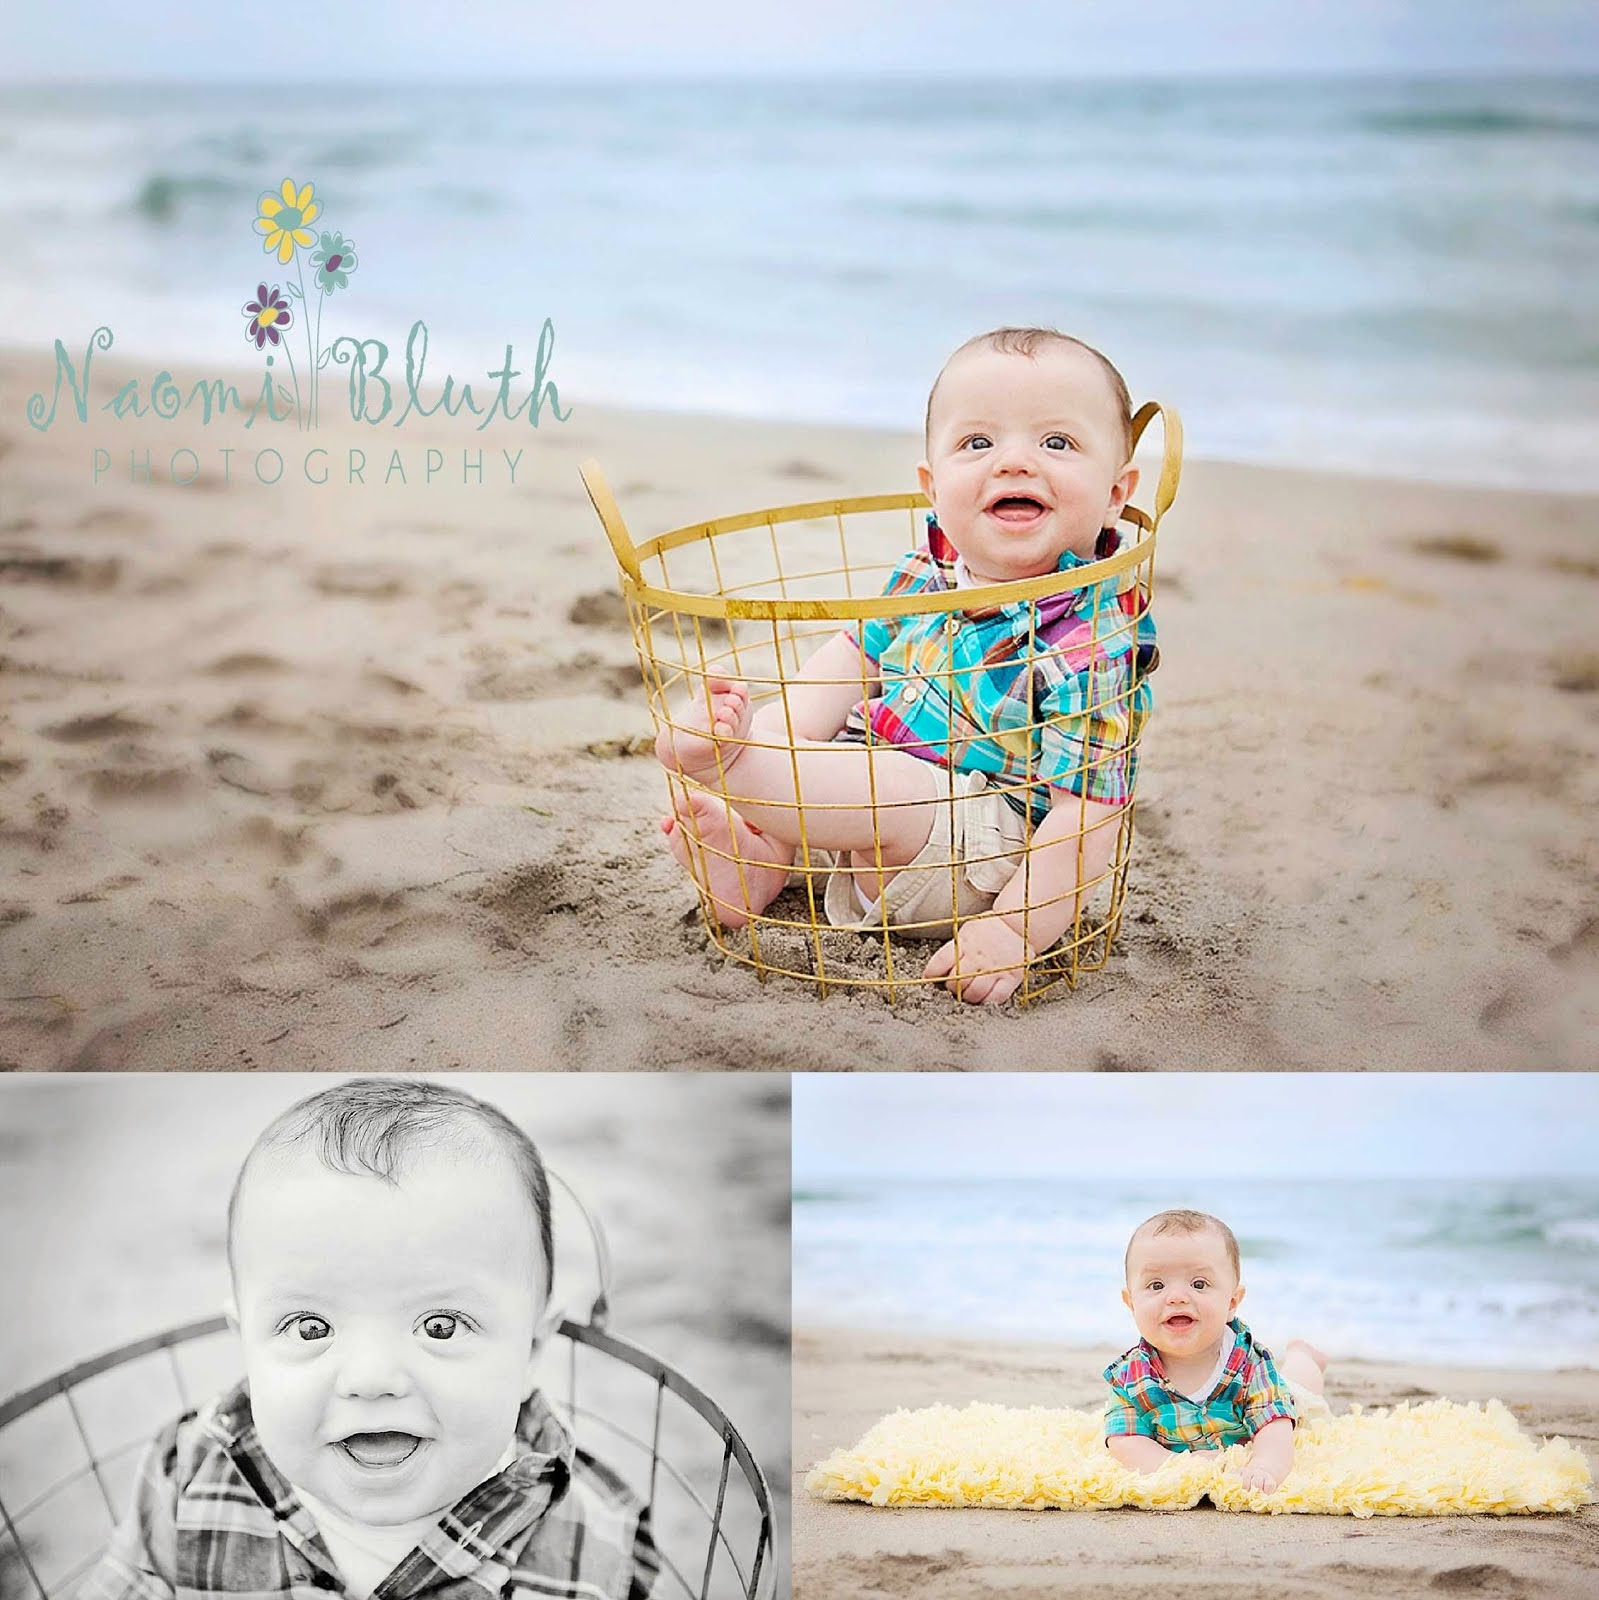 Boca raton family beach photographer south florida beach baby photographer 6 month old portraits lentino family